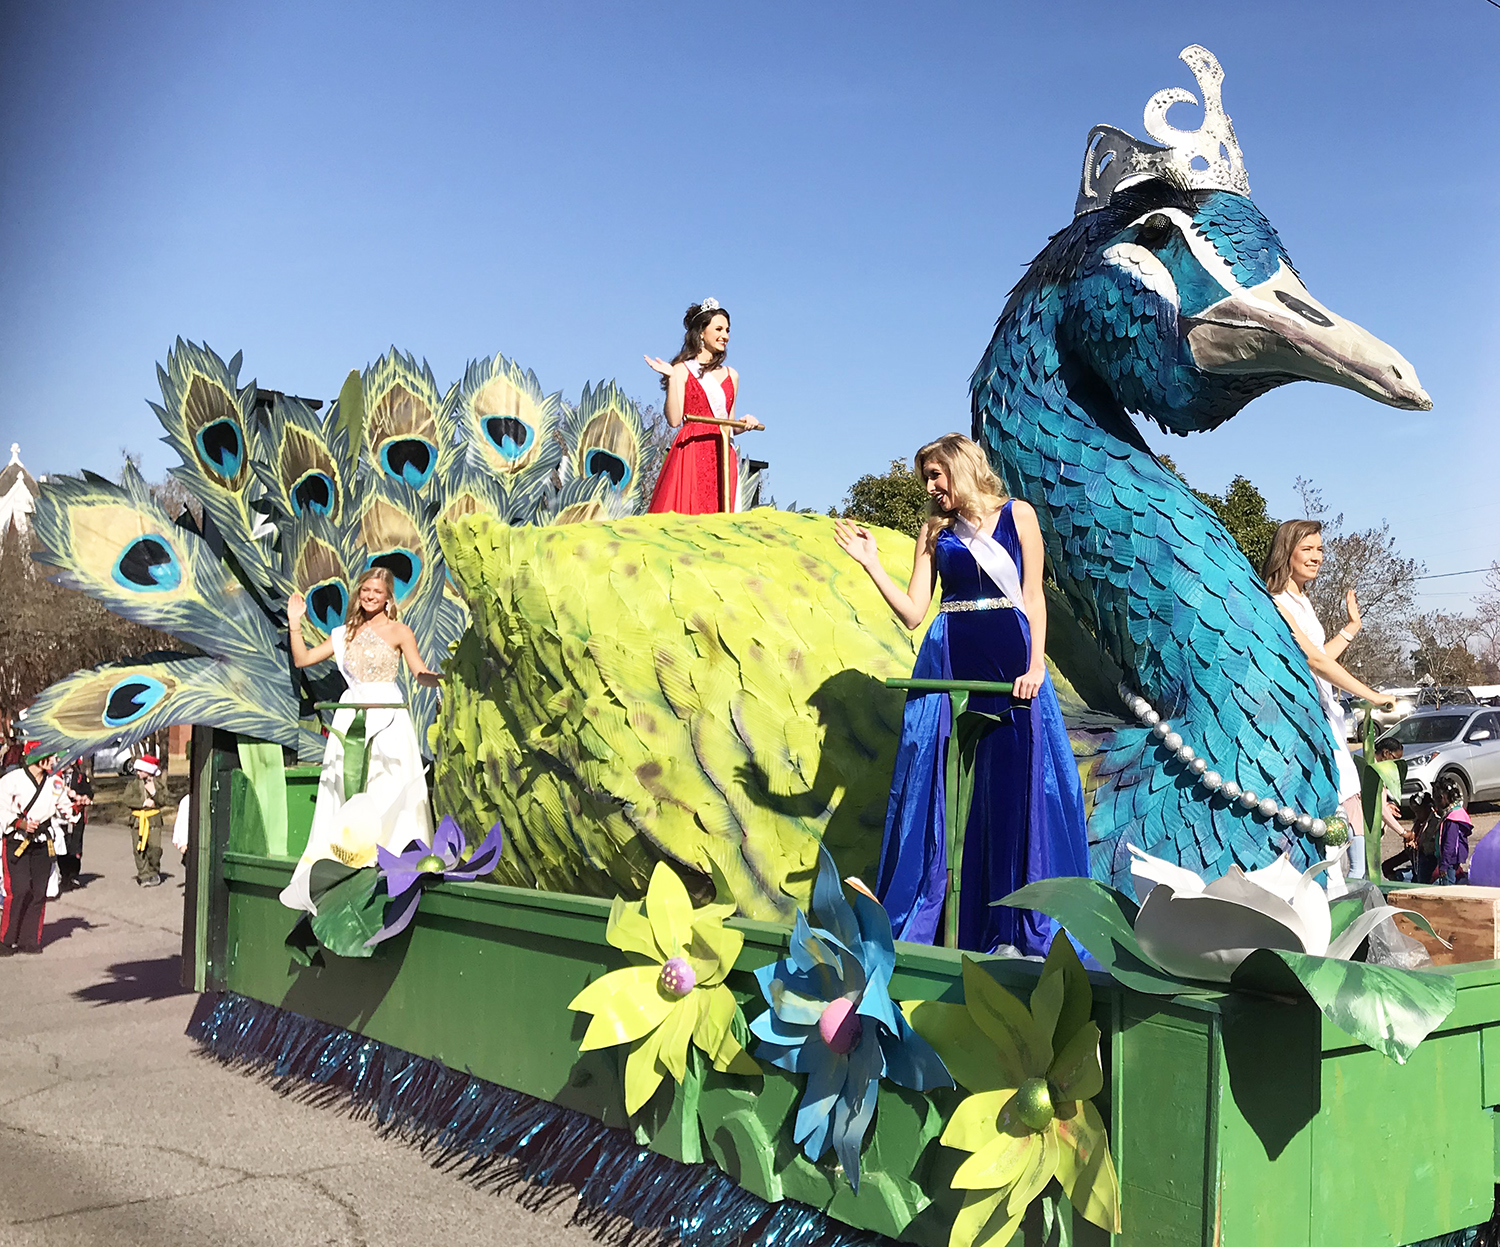 https://alabama-travel.s3.amazonaws.com/partners-uploads/photo/image/5f28416942c80e0007d316e8/COTR Day Parade - peacock float.jpg